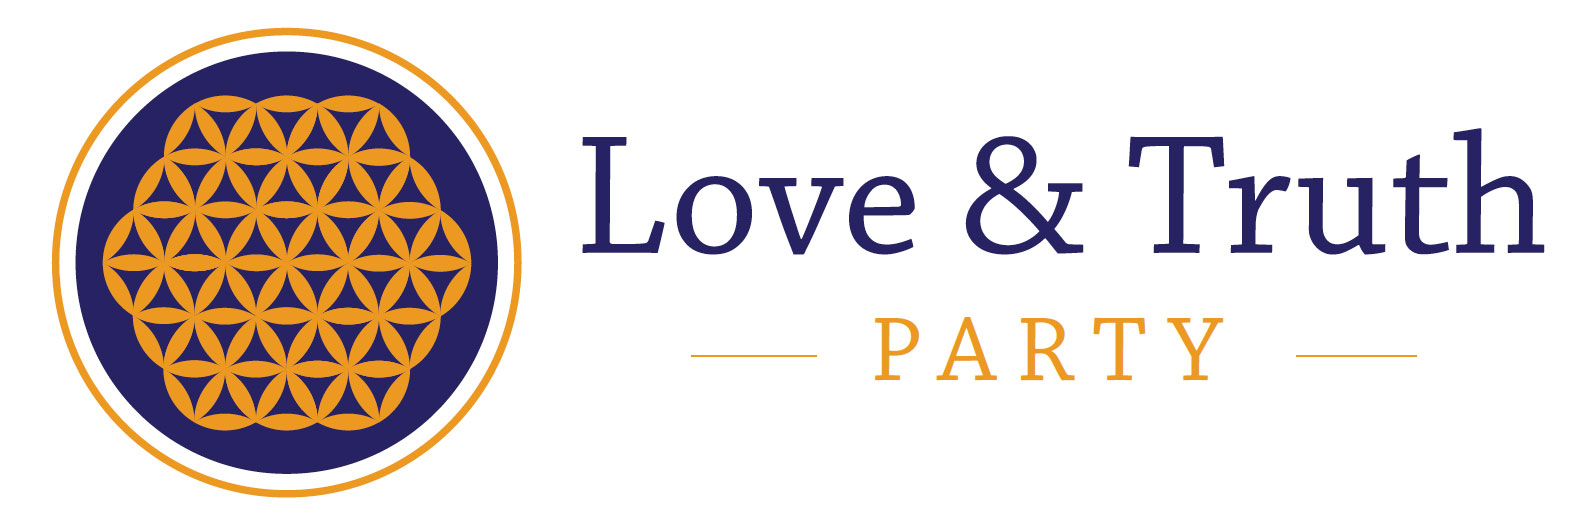 LOVE-&-TRUTH-PARTY LOGO.jpg